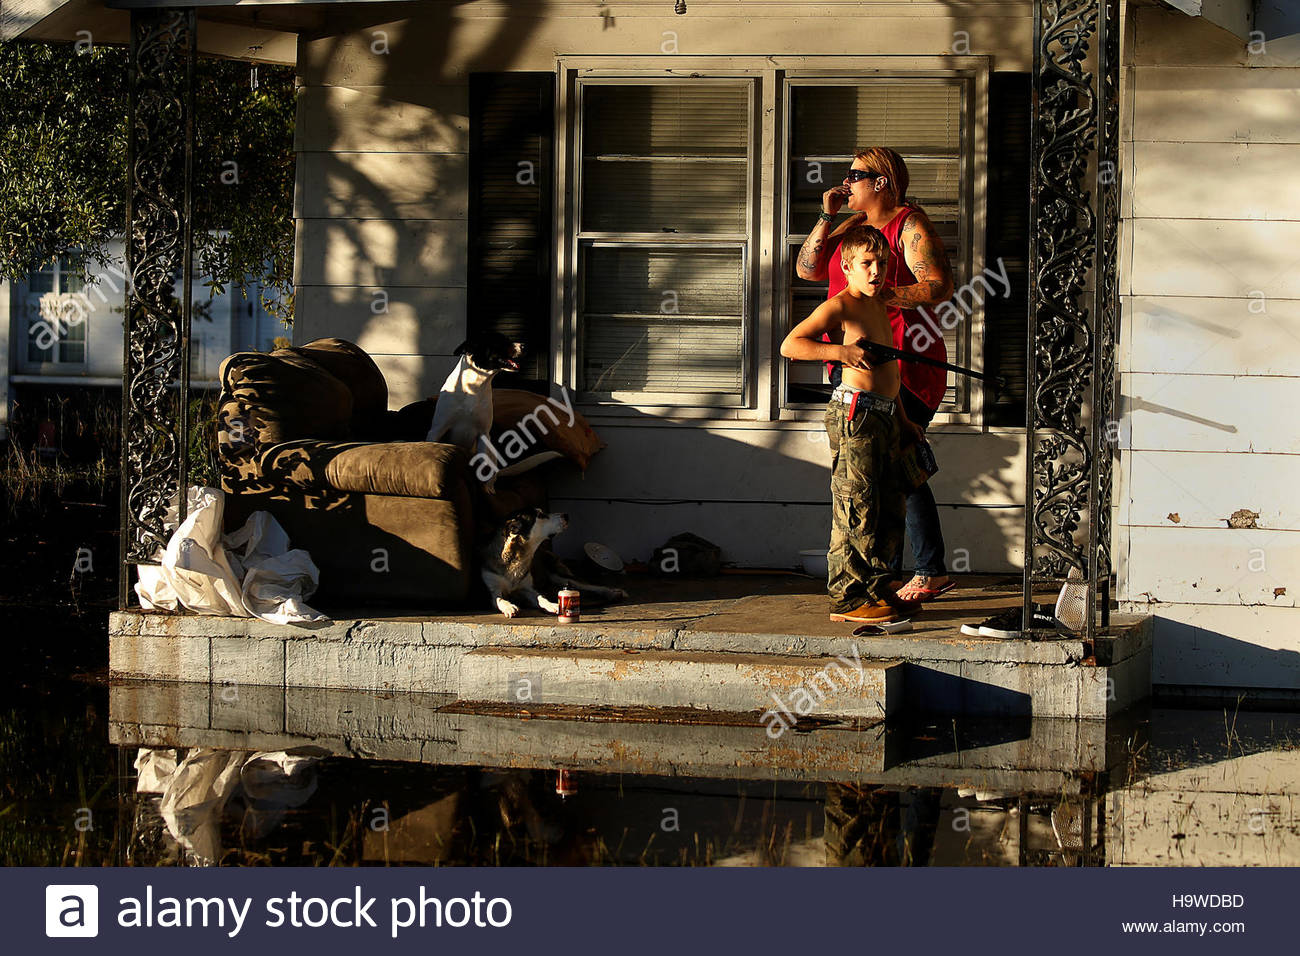 Residents hang out on their front porch as a child holds a bb gun while they seek refuge from flood waters as a result of hurricane matthew in lumberton